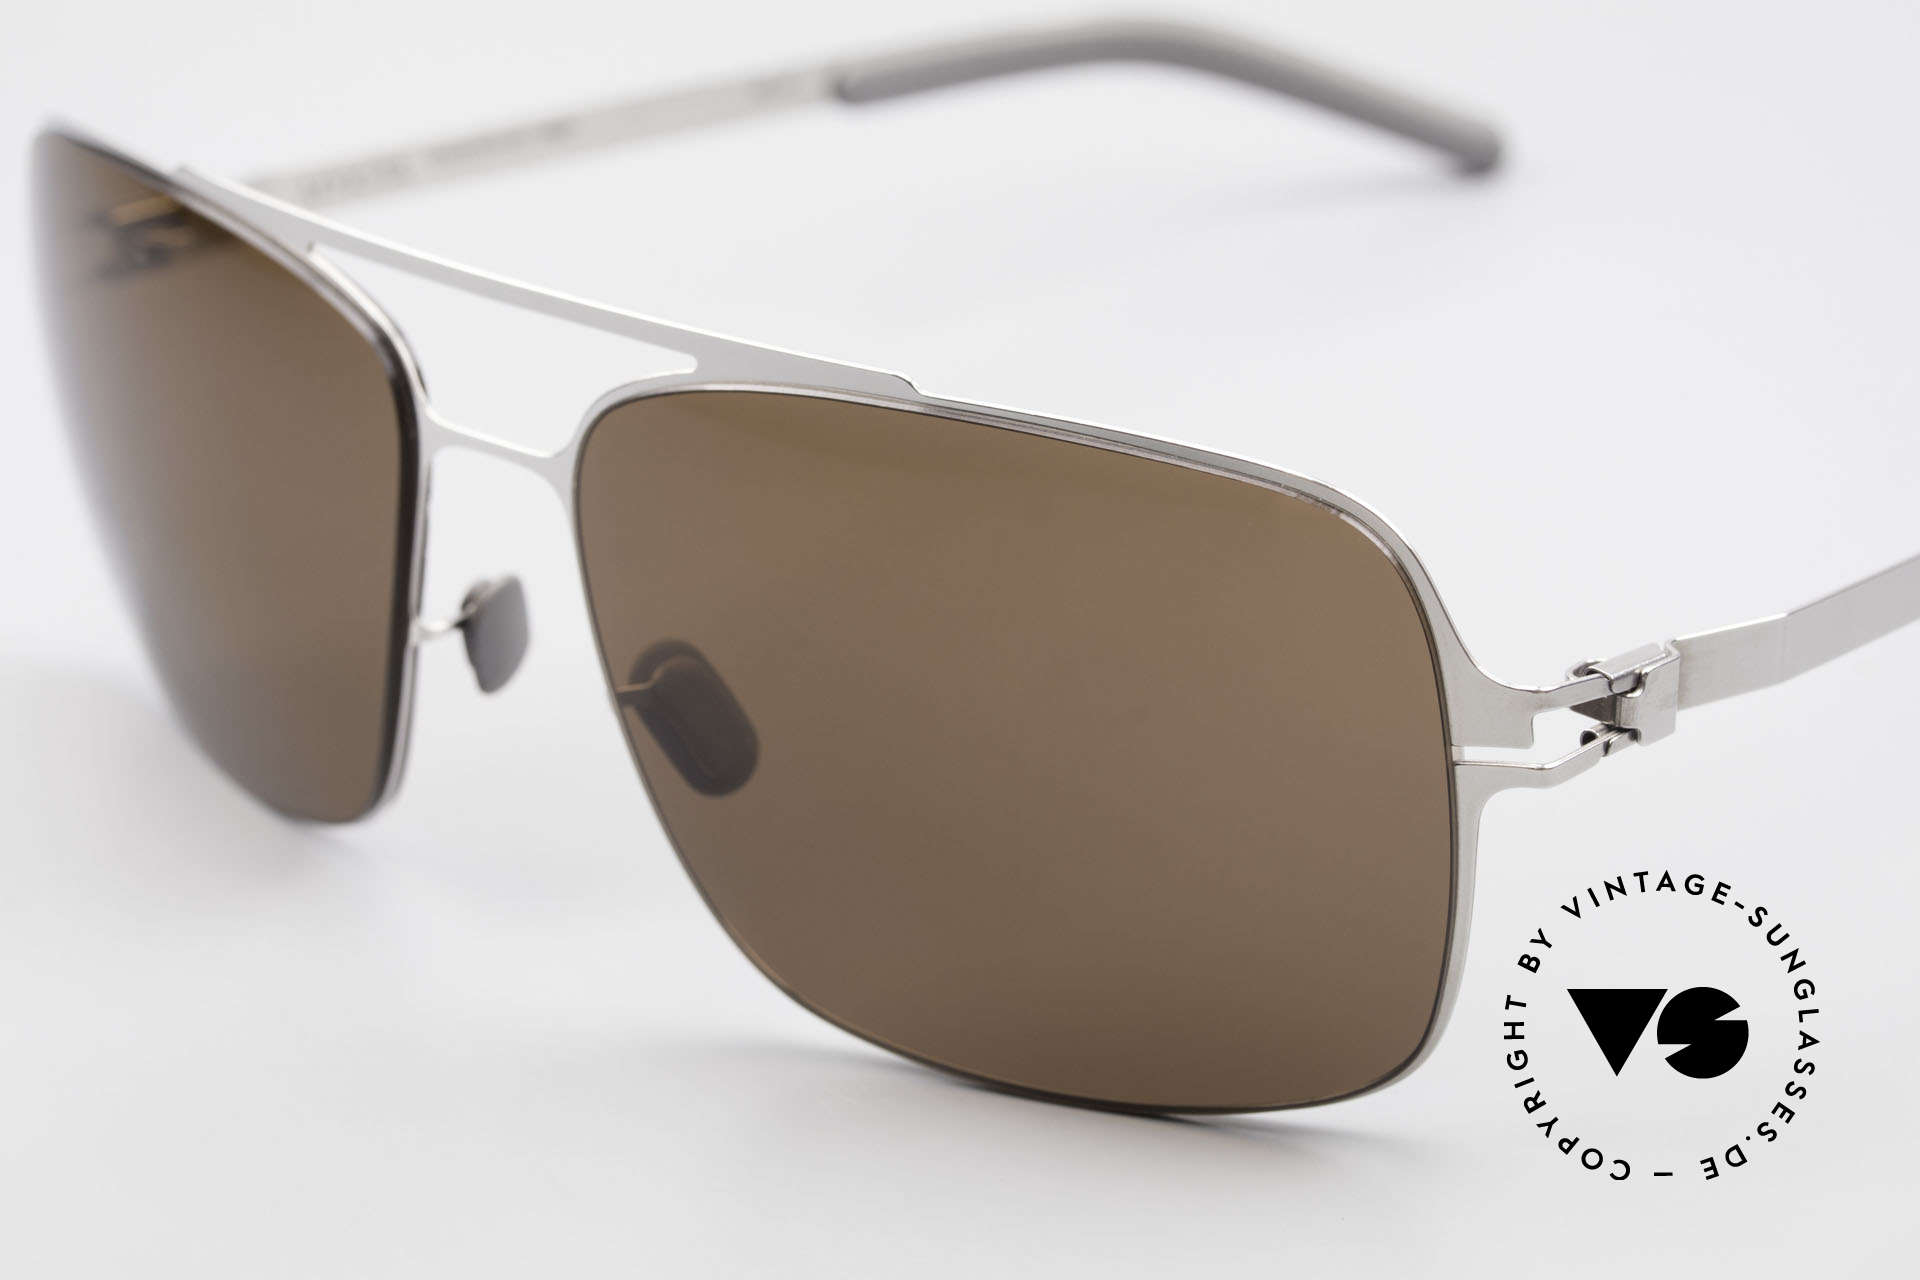 Mykita Troy Collection No 1 Mykita Shades, innovative and flexible metal frame = One size fits all!, Made for Men